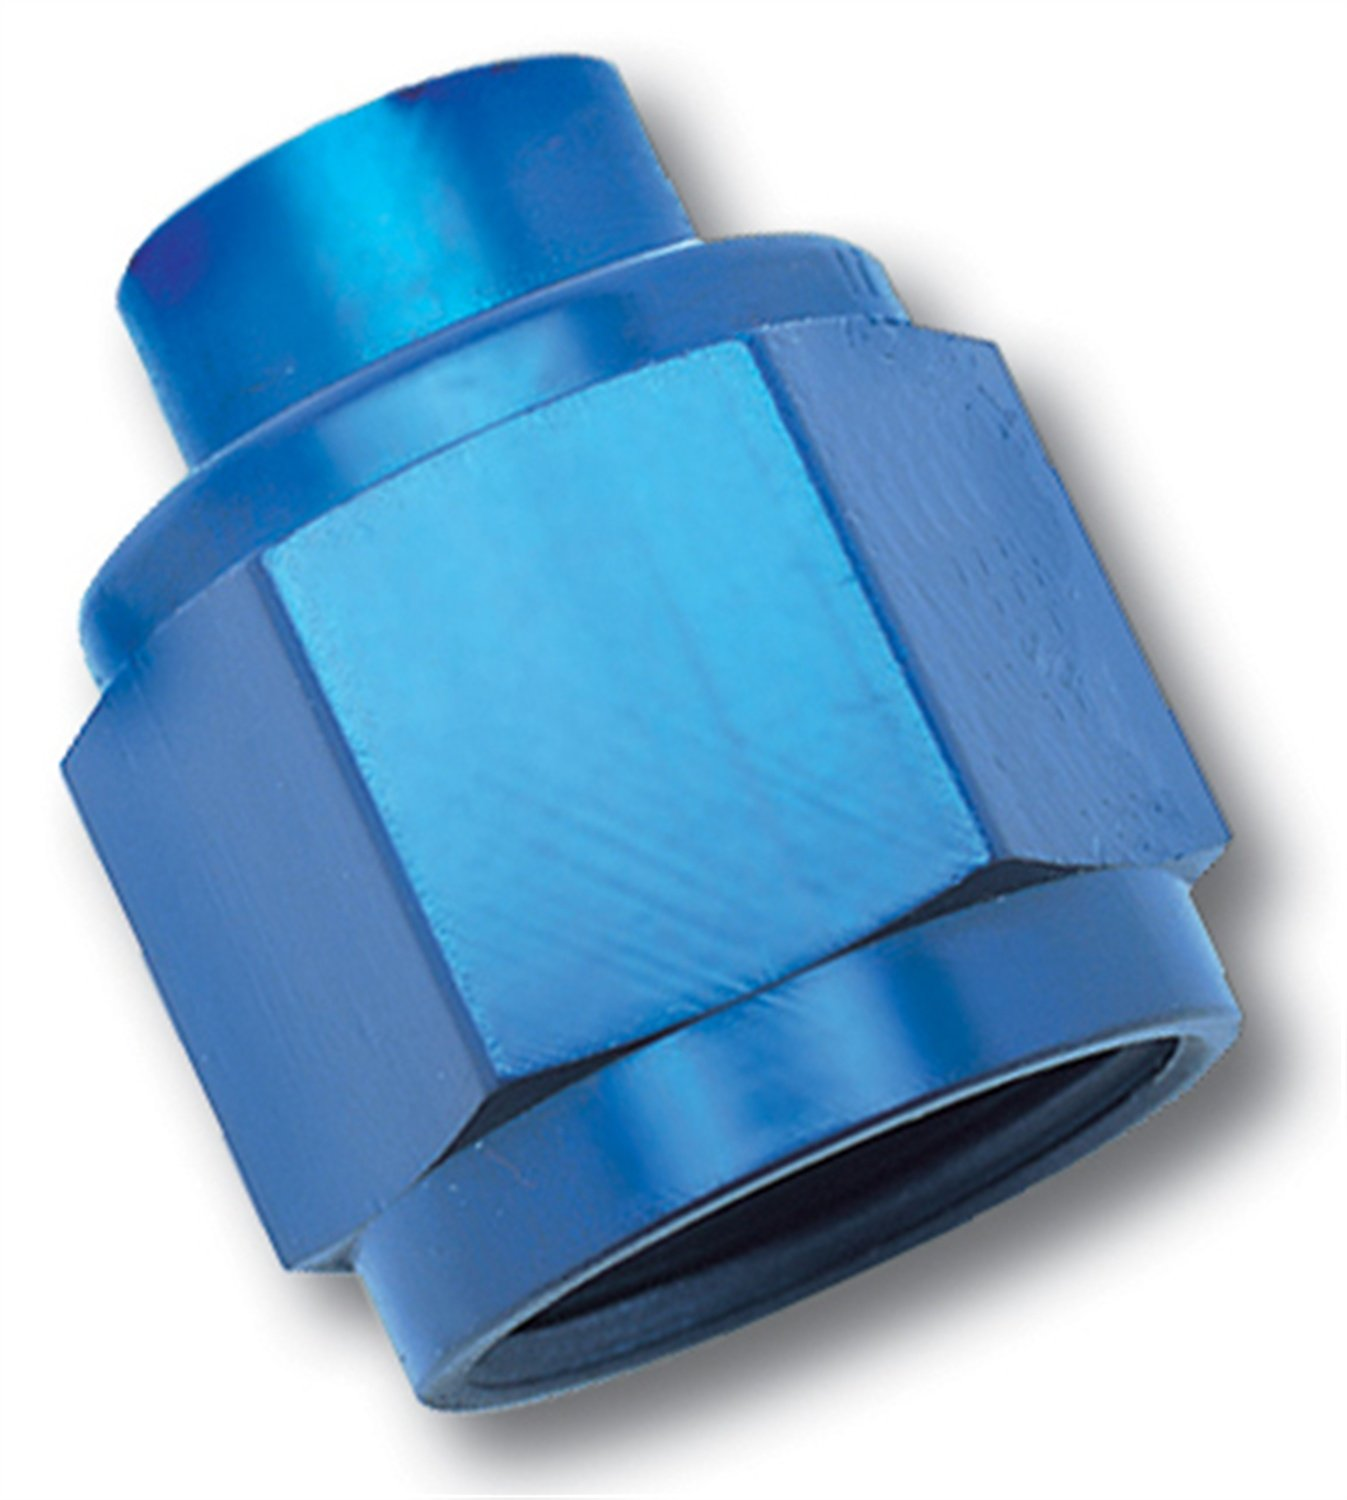 Edelbrock/Russell 661990 Blue Anodized Aluminum -12AN Flare Cap Fitting RUS-661990